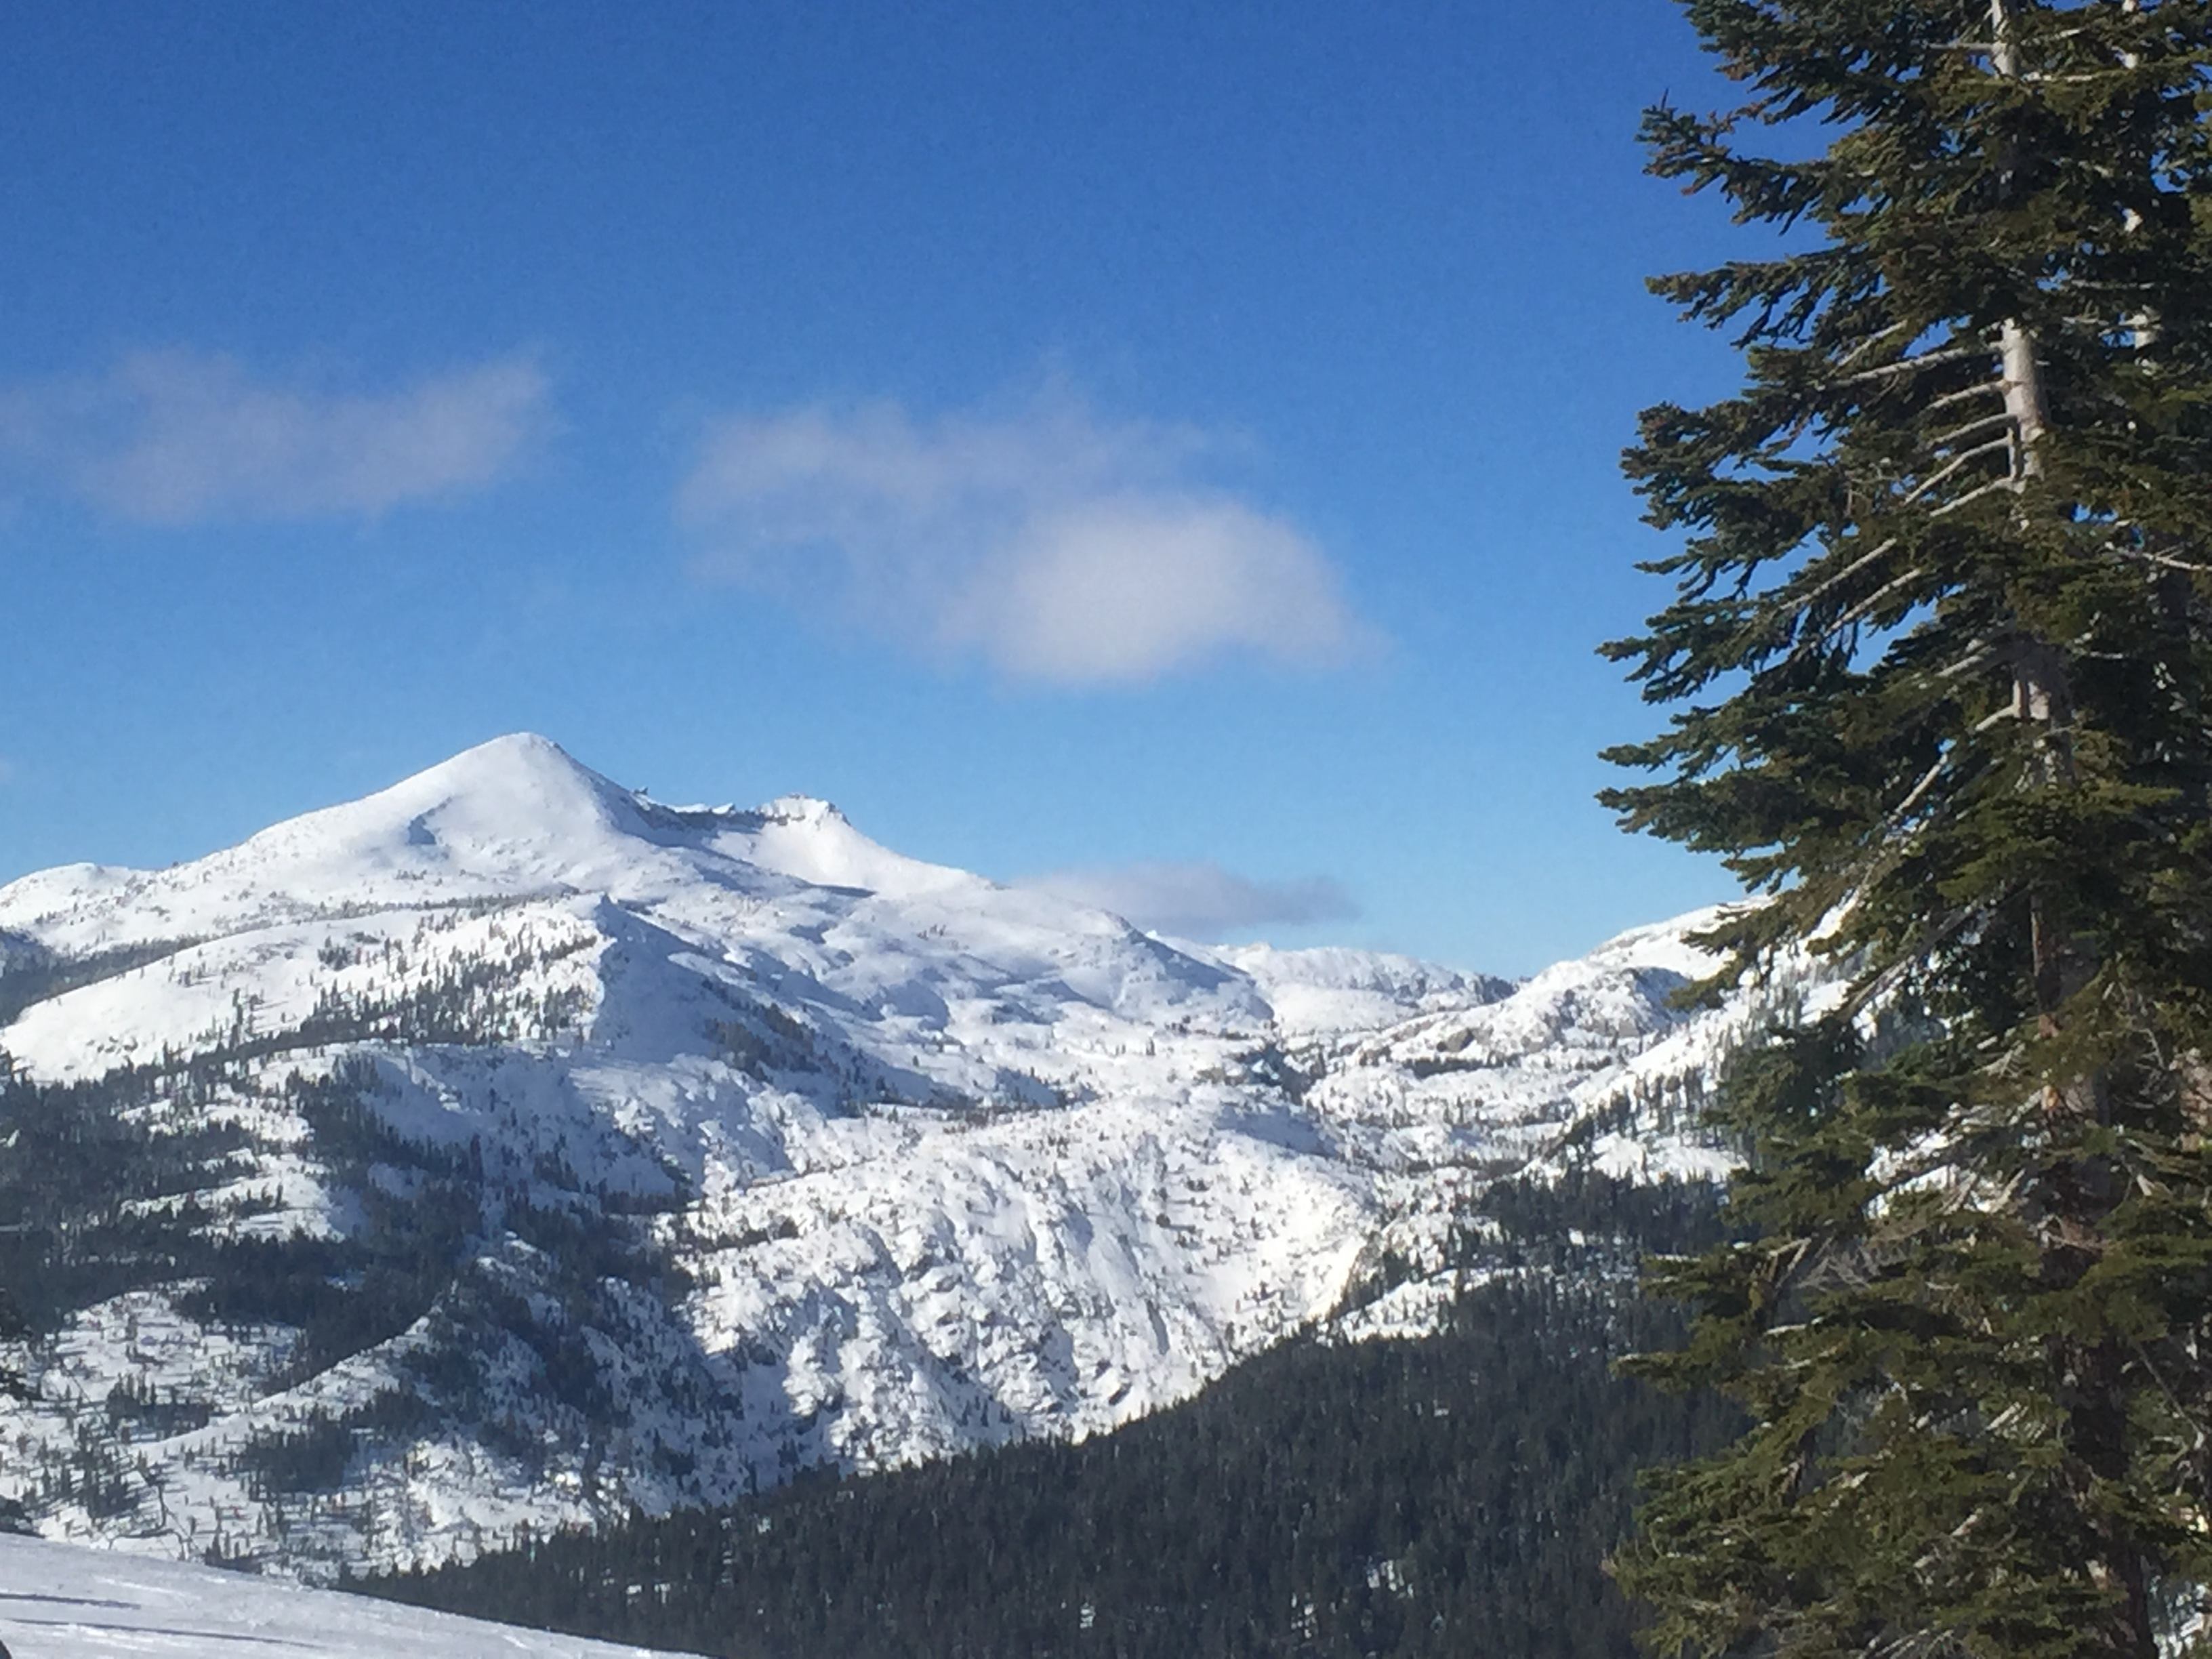 The Sierra snowpack looked promising in January, but dry days and high temperatures in February began the Big Shrink.